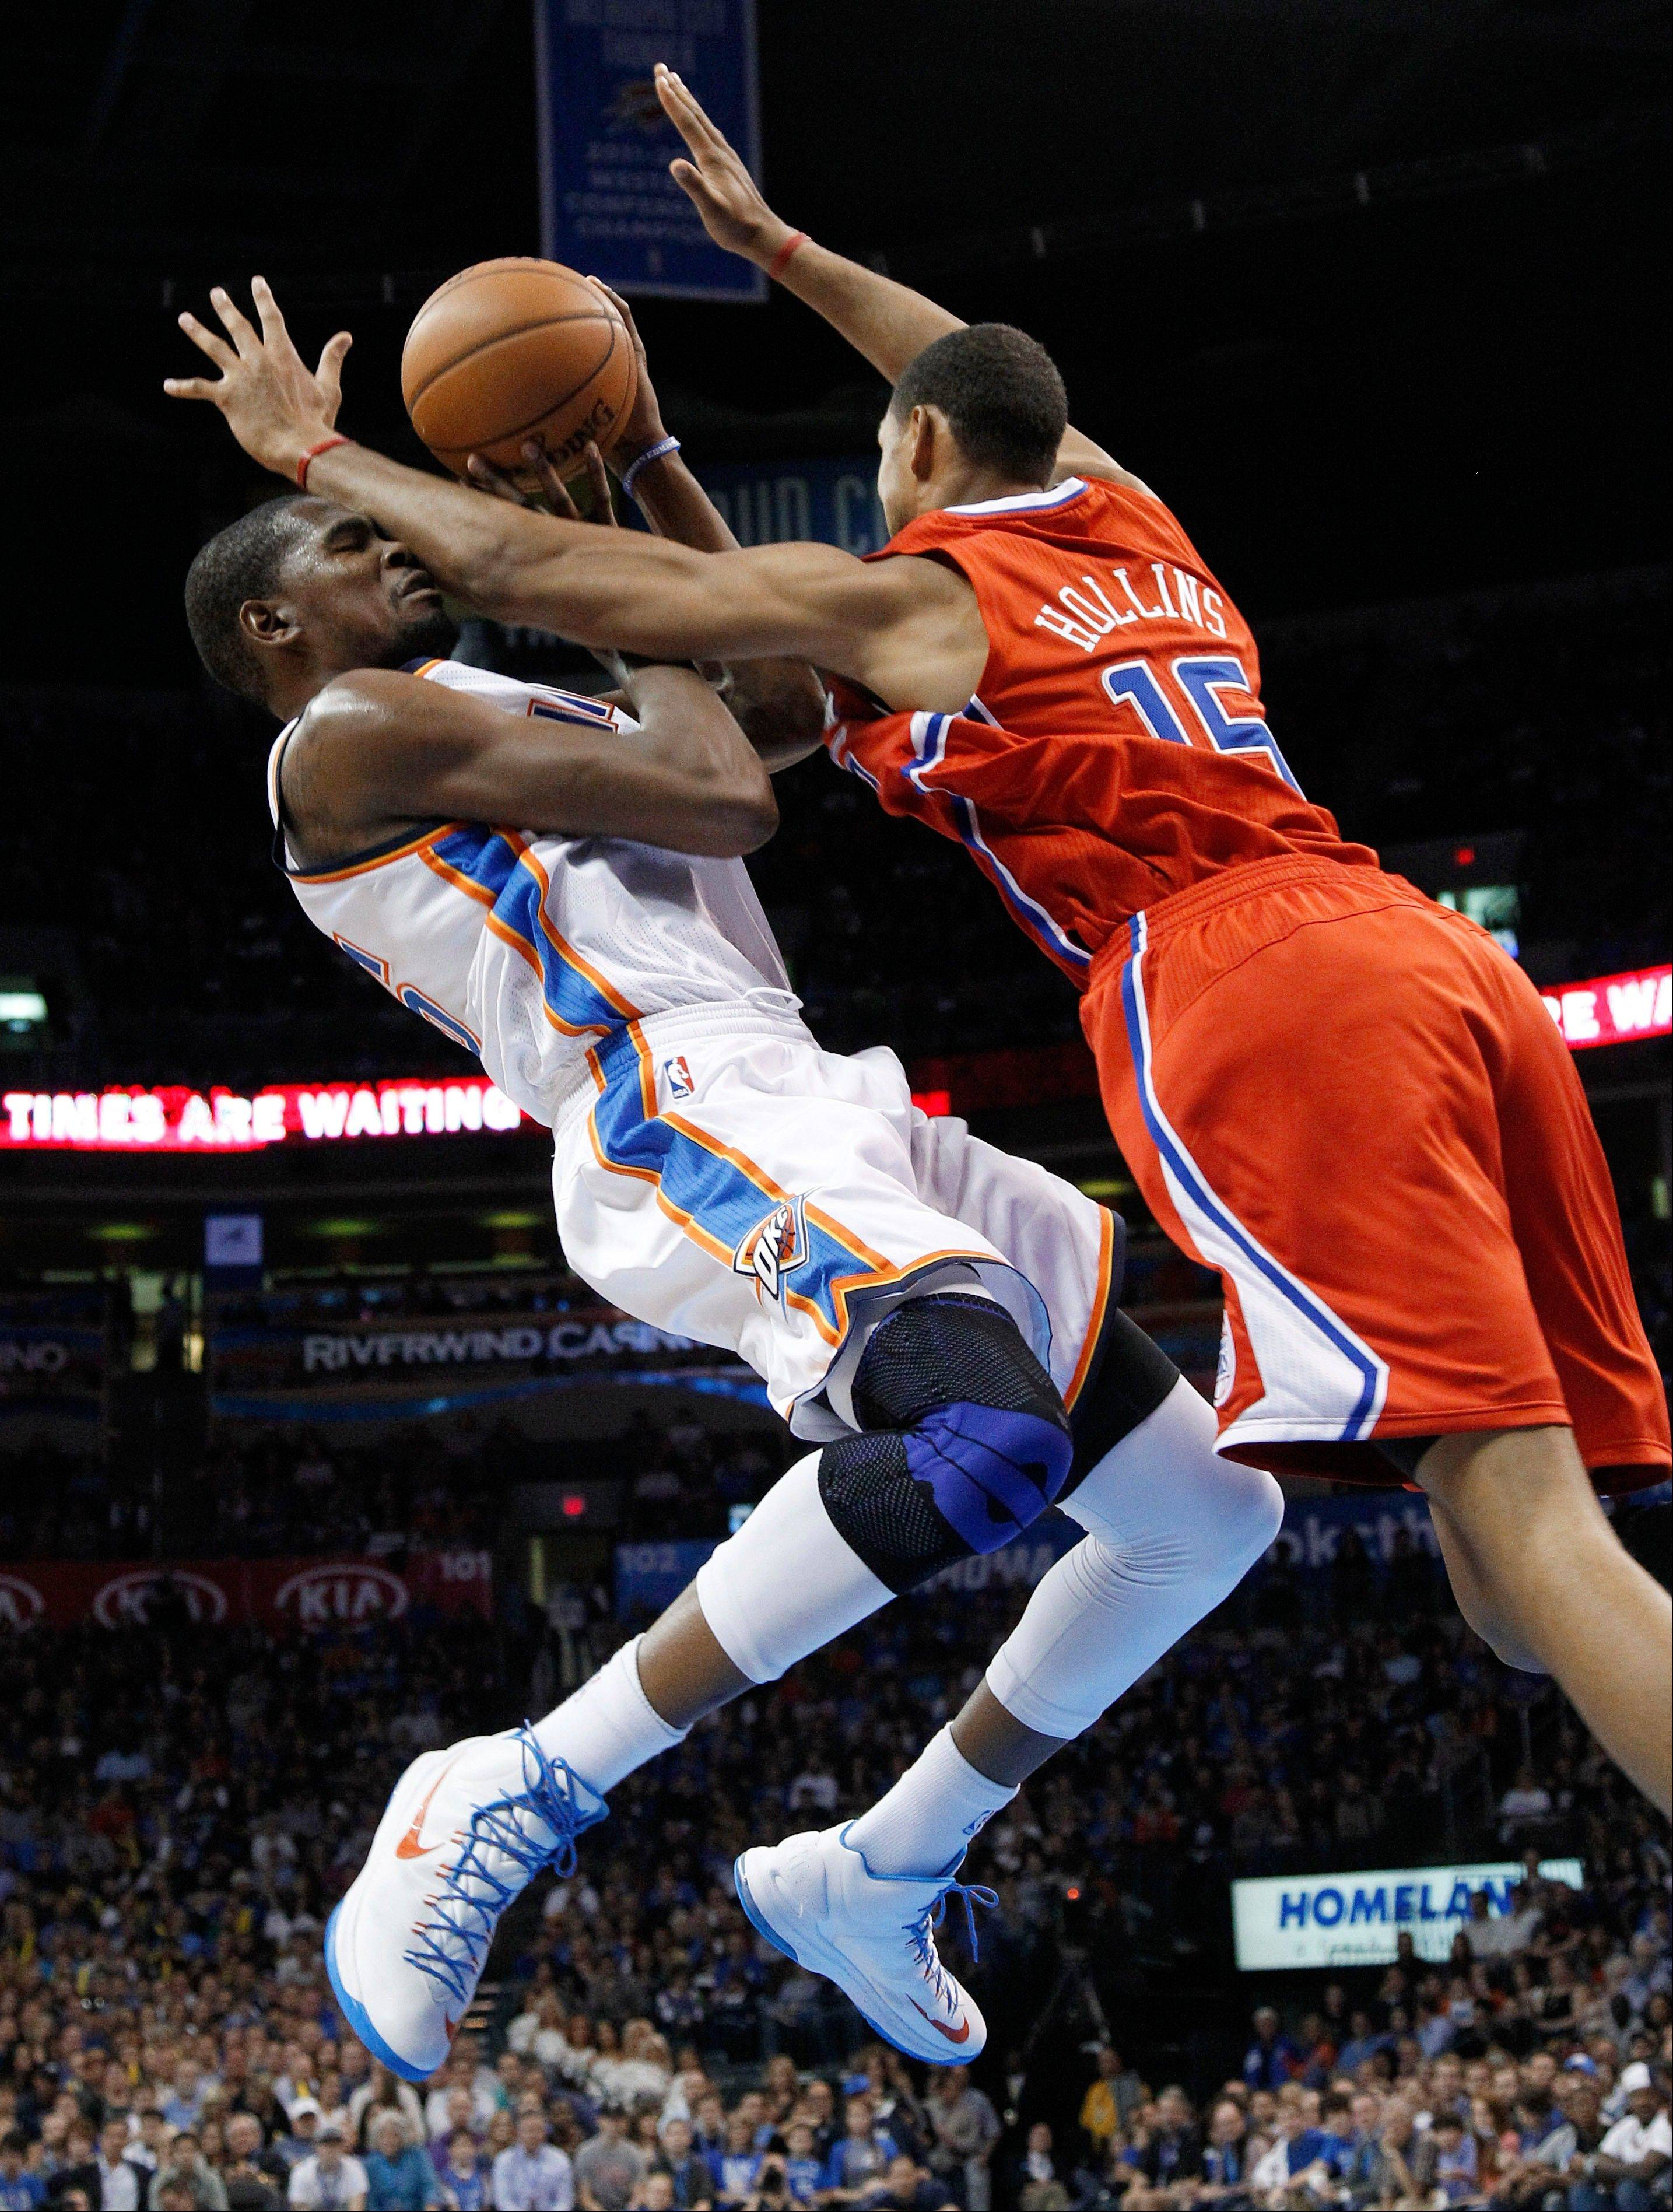 OKC outlasts Clippers 117-111 in overtime